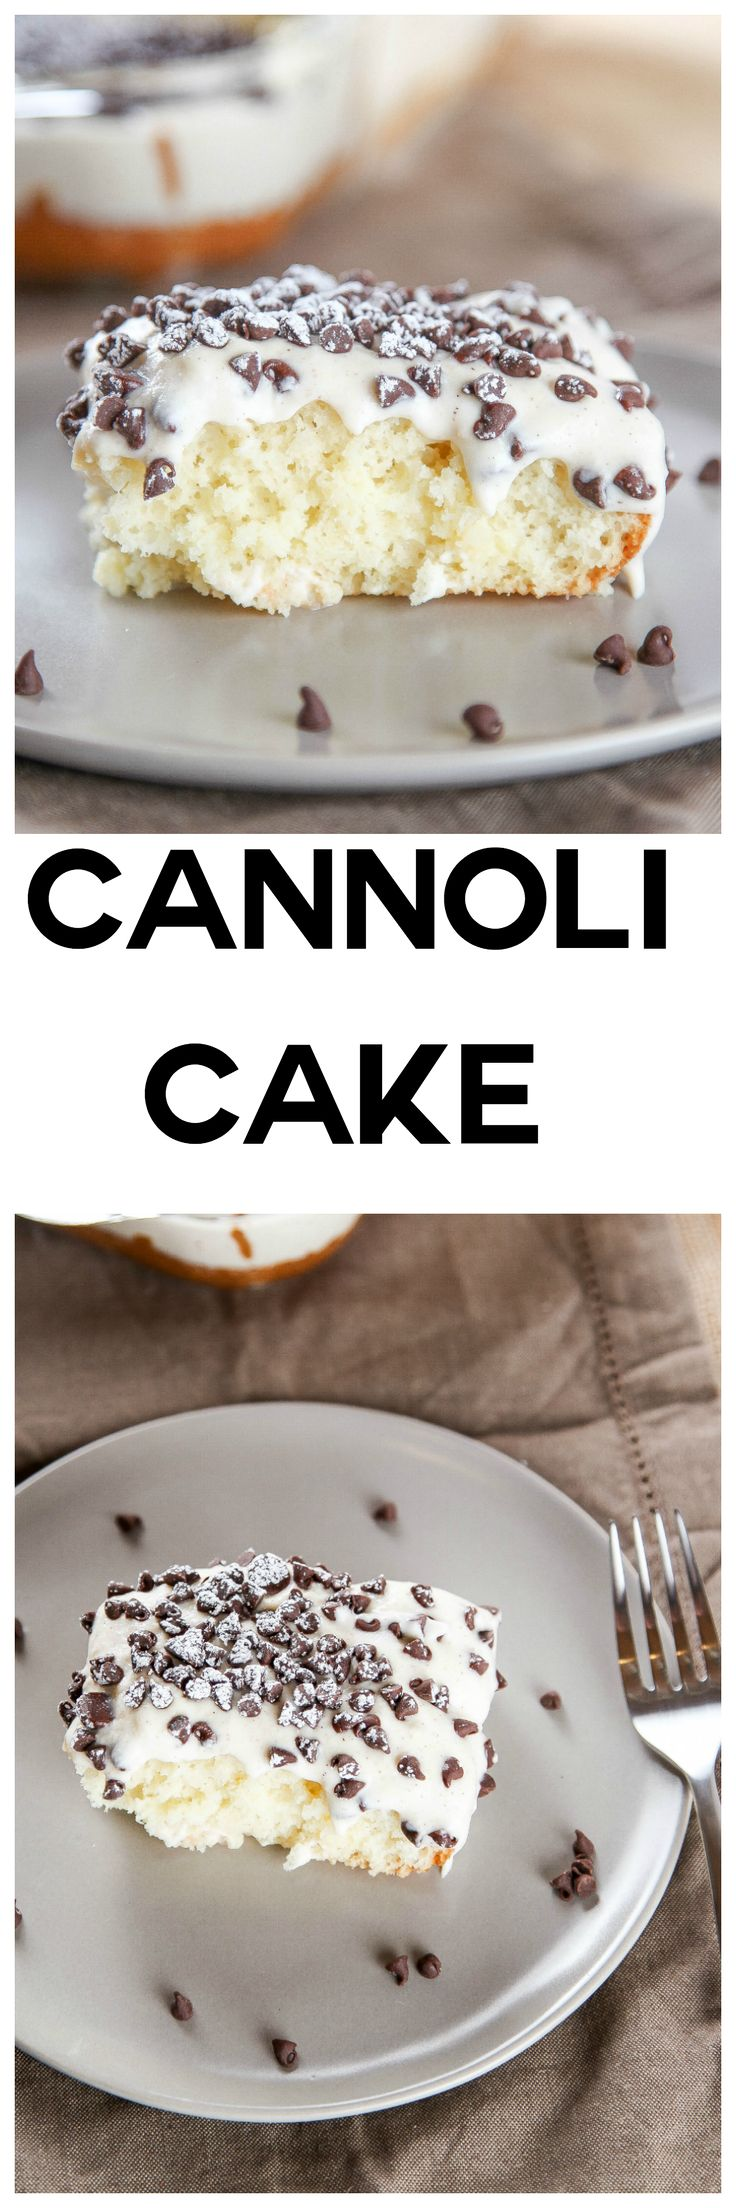 Cannoli Cake with Cannoli Cream Frosting: Moist melt in your mouth cake topped with a decadent cannoli cream frosting. Your favorite Italian dessert in cake form!